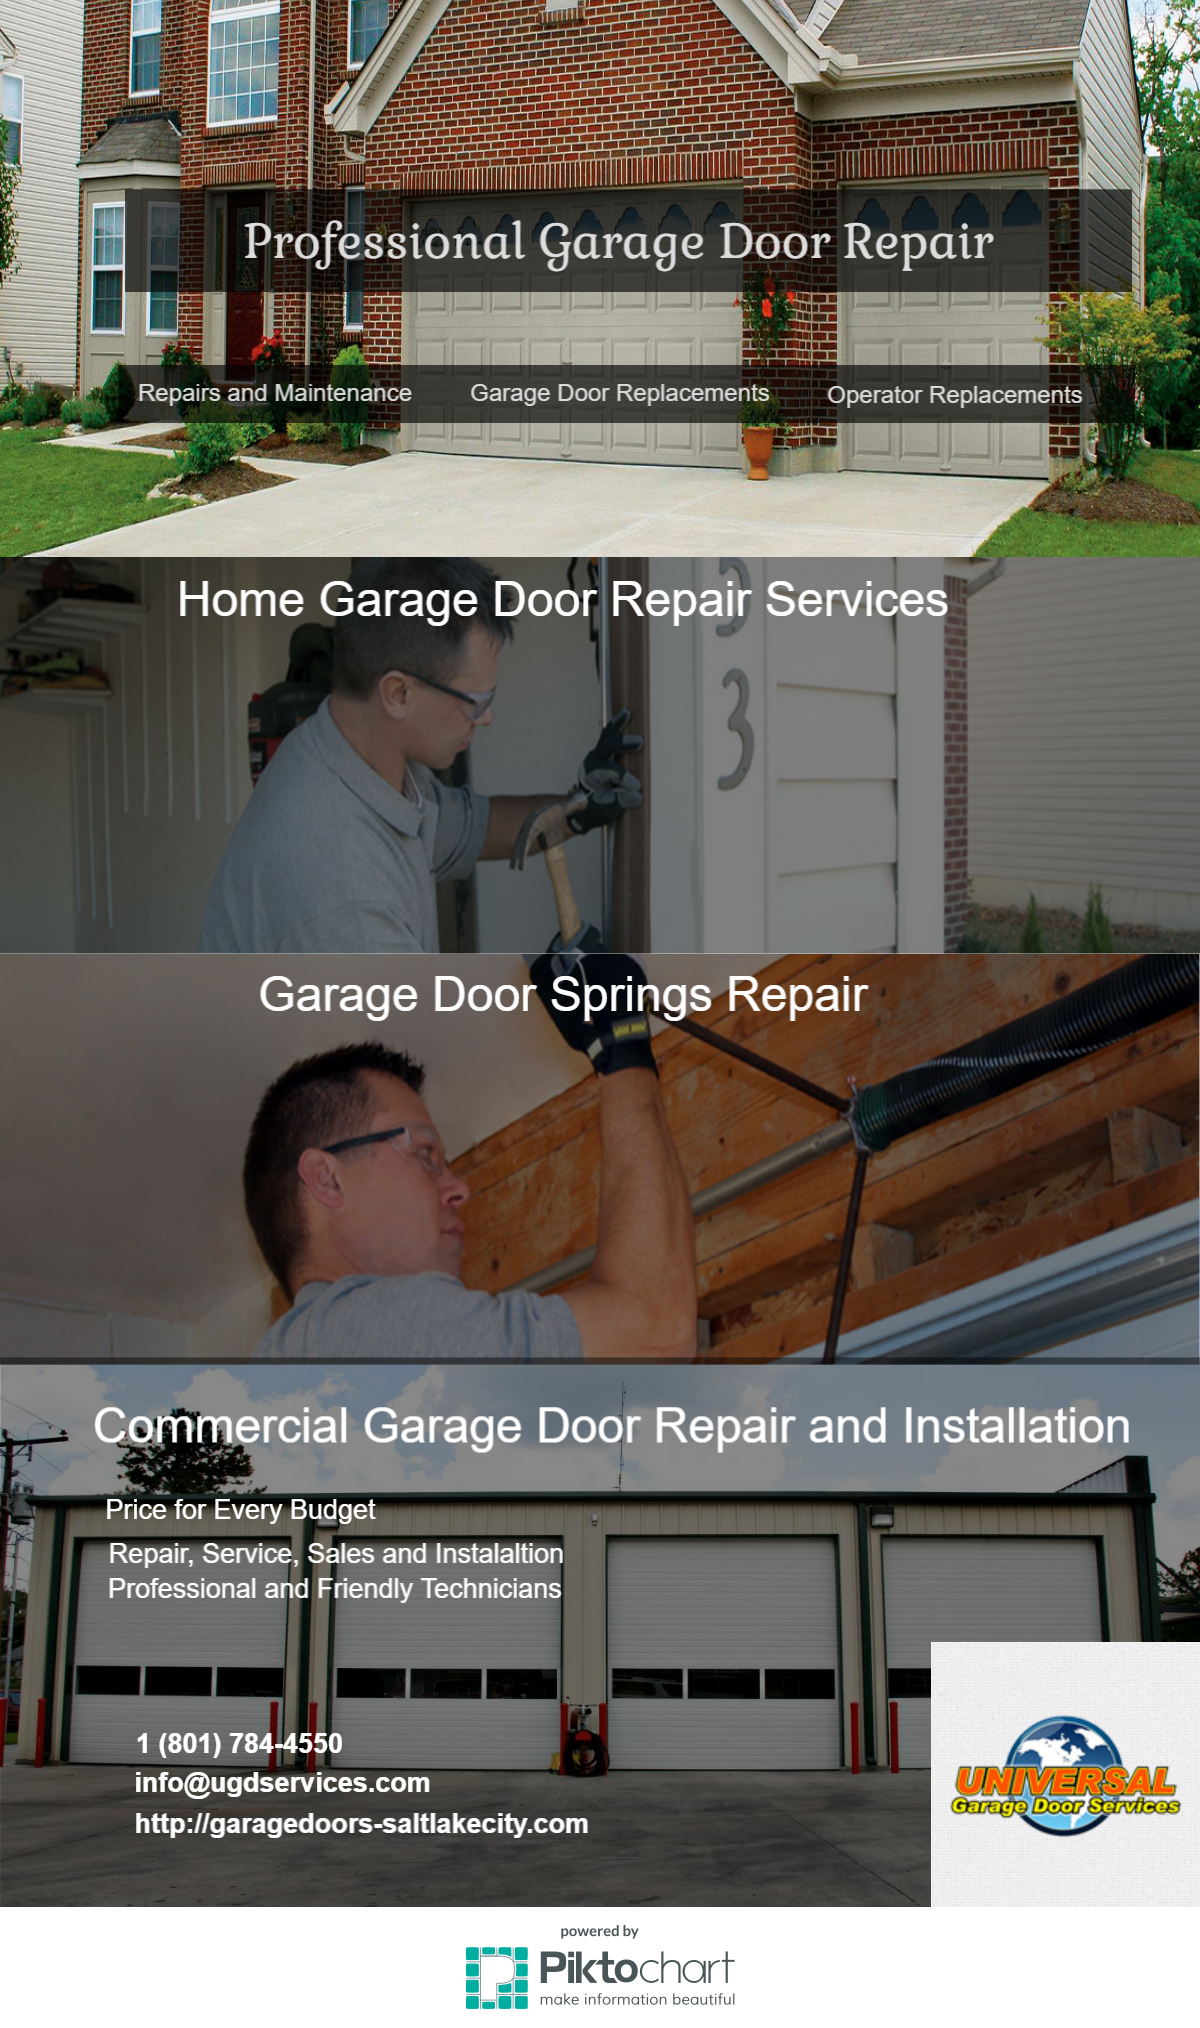 Garage Doors Openers Salt Lake City Utah Services Will Take